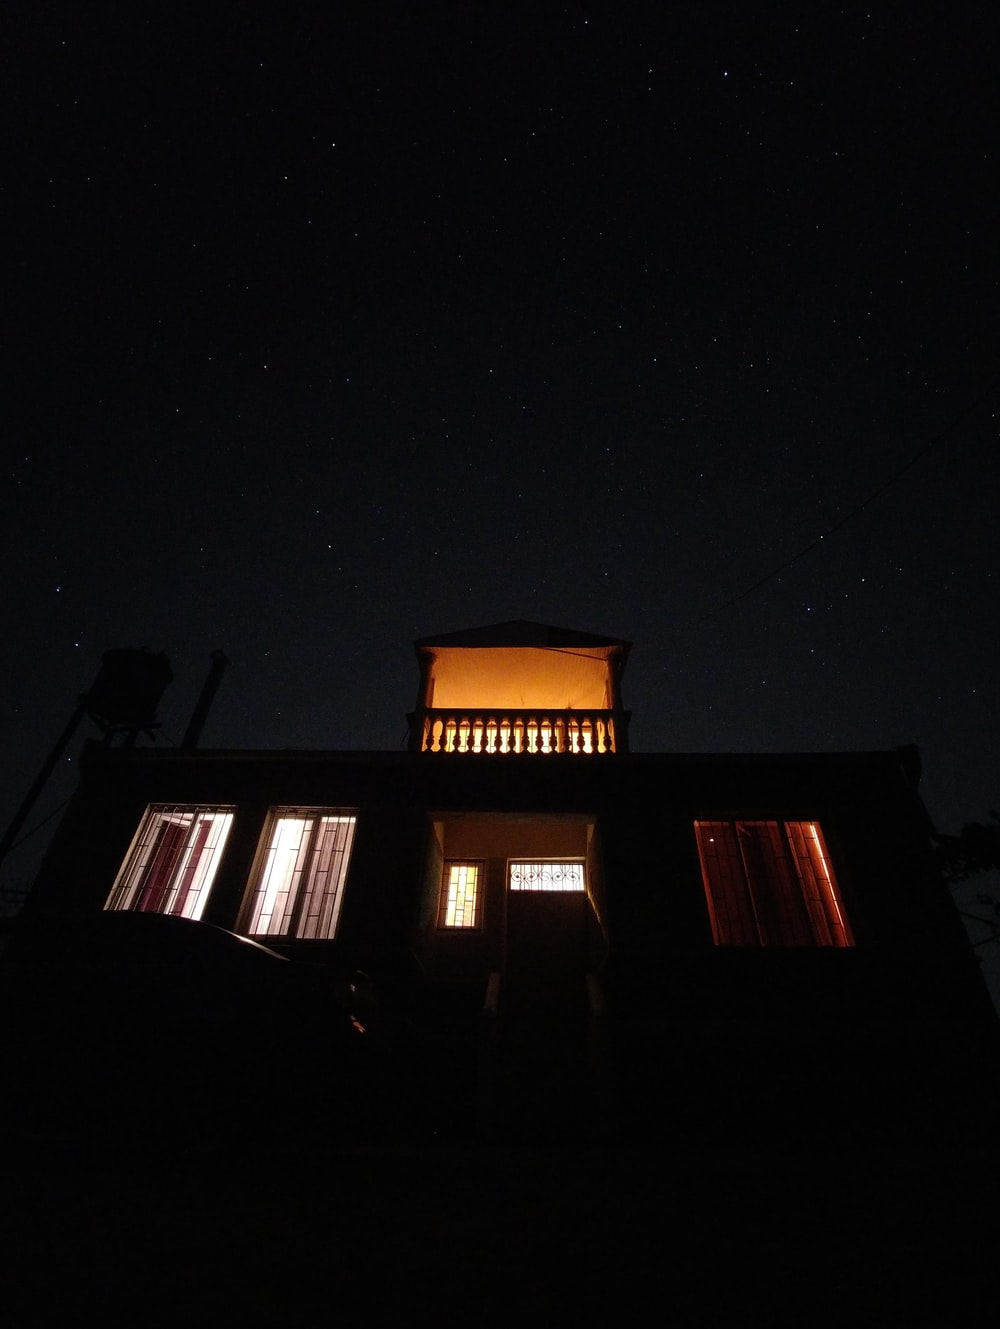 lighted house at nighttime